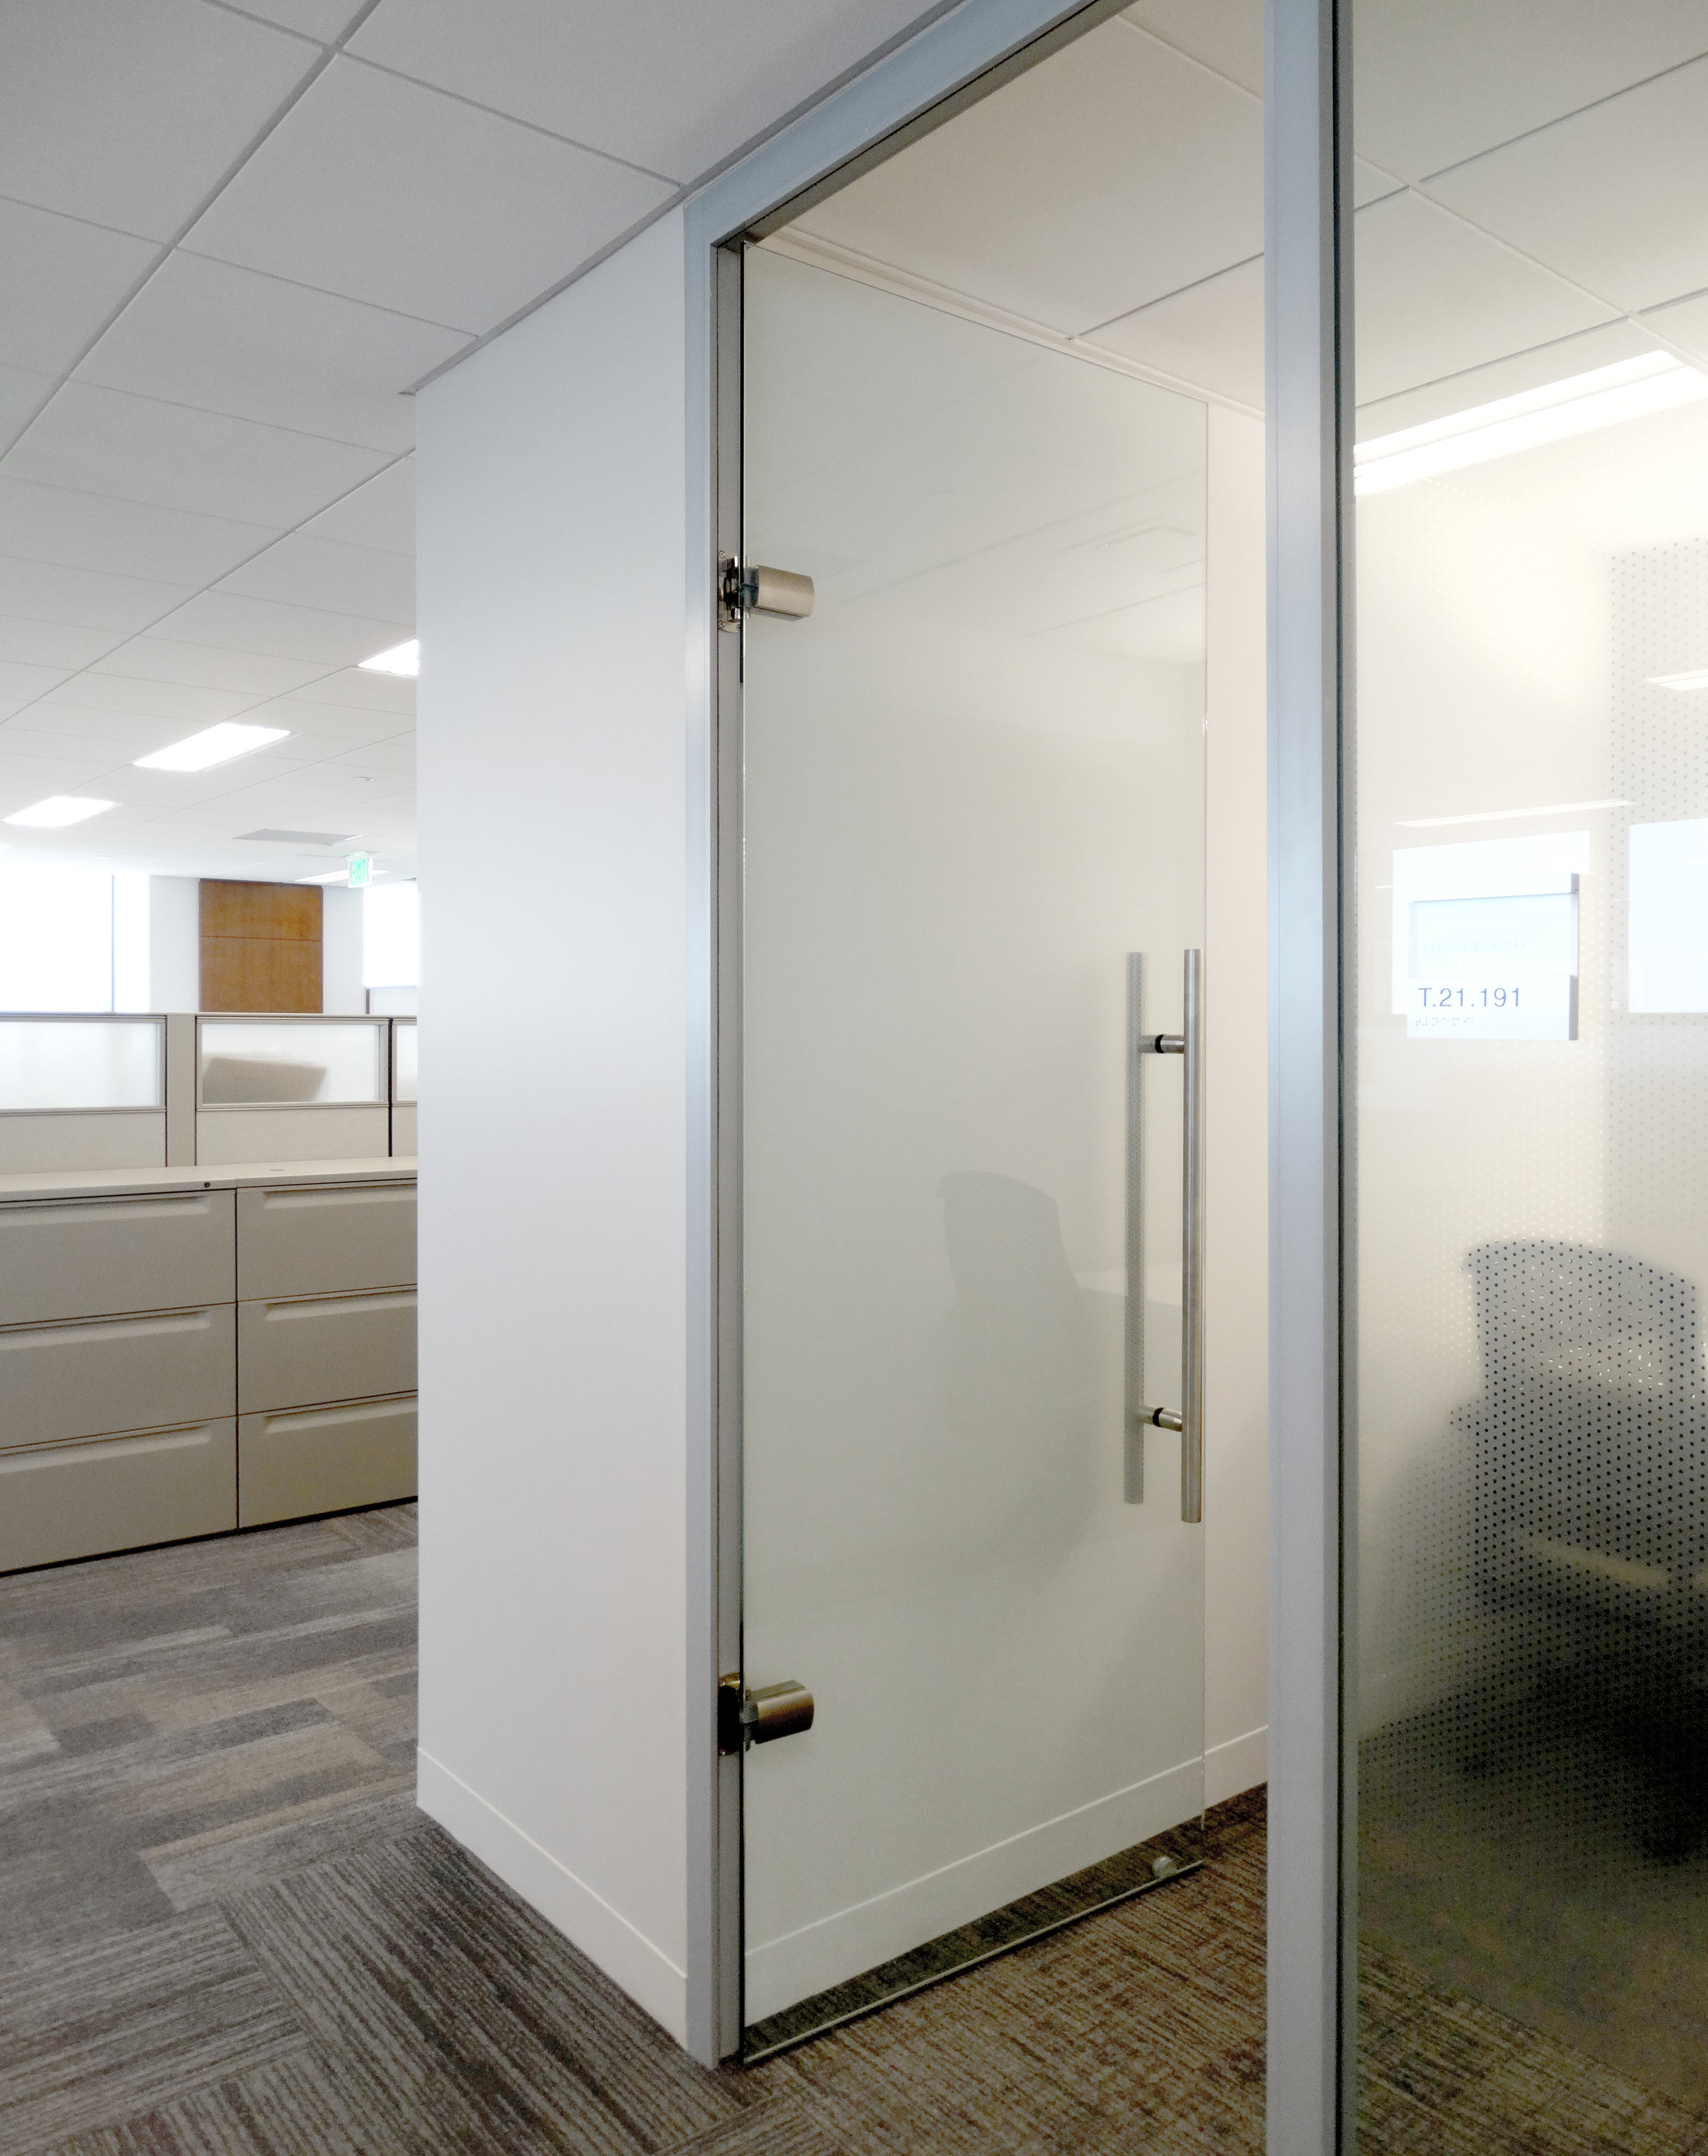 Litespace Aluminum Framed System Frameless Glass Swing Door - Spaceworks AI.jpg